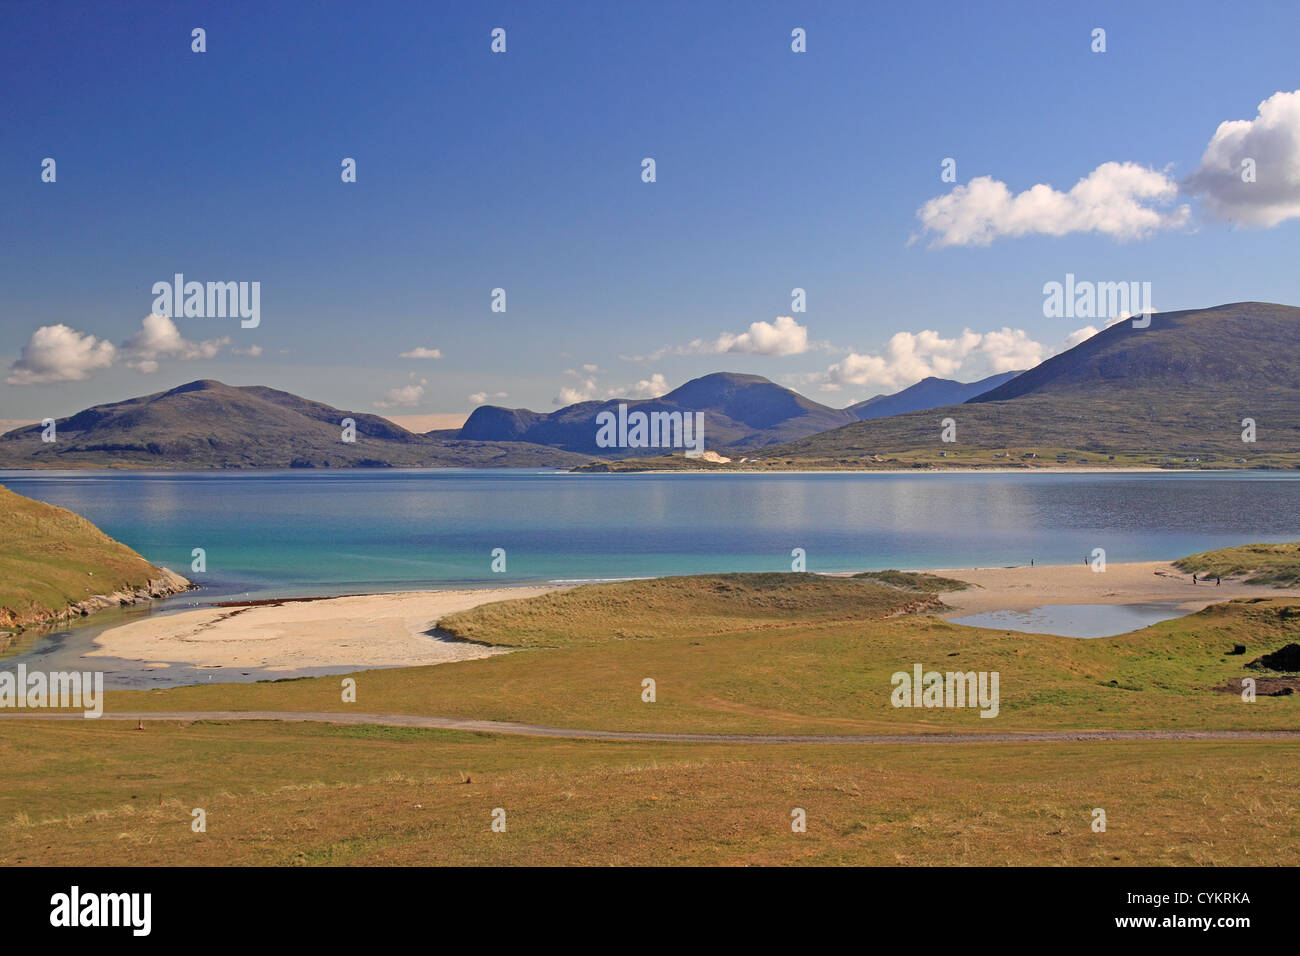 UK Scotland Outer Isles Isle of Harris Horgabost Bay and the Harris mountains - Stock Image